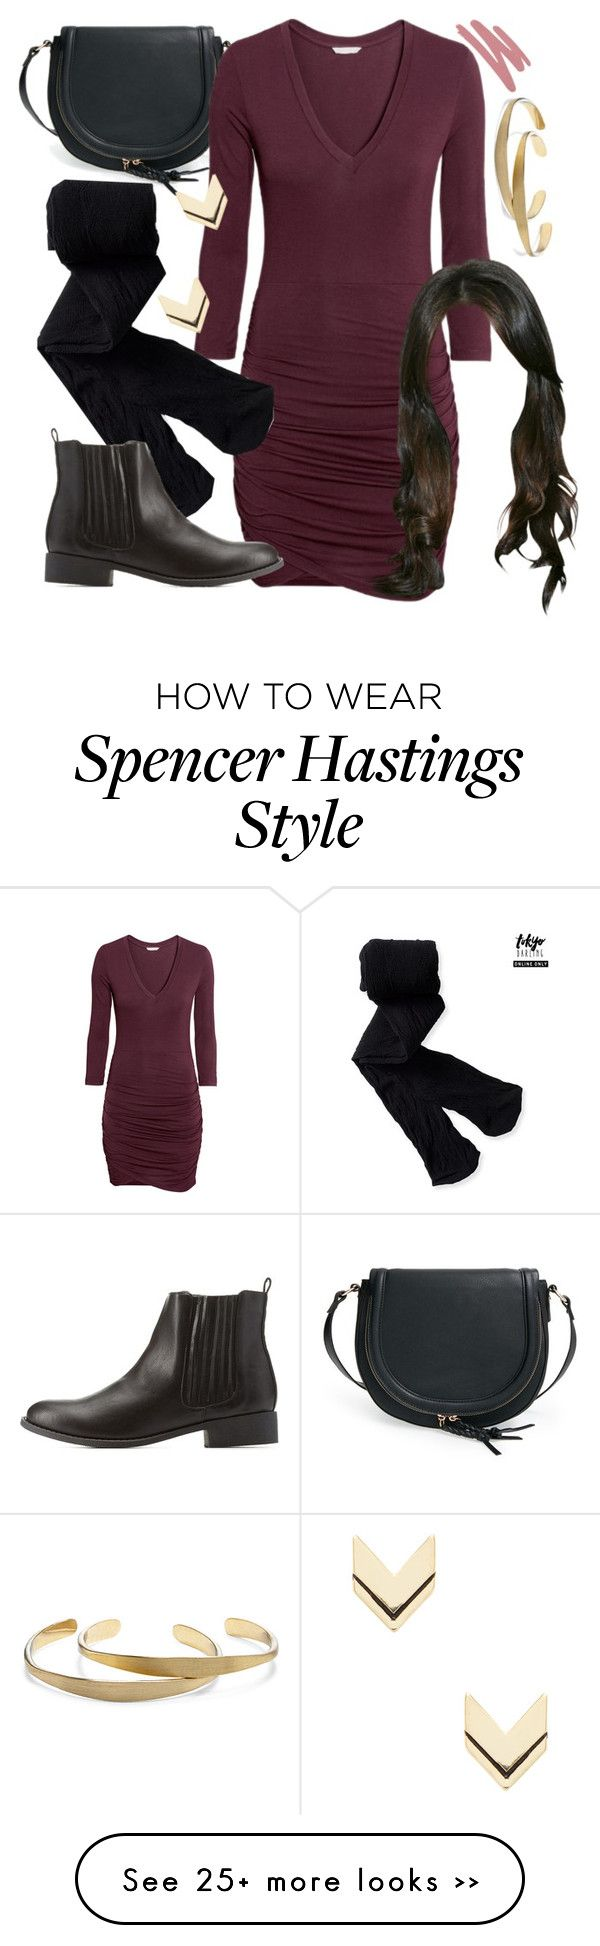 """""""Spencer Hastings inspired outfit"""" by liarsstyle on Polyvore featuring Sole Society, H&M, Aéropostale, Charlotte Russe, Leslie Danzis, Anna Sui, NightOut, date and mid"""